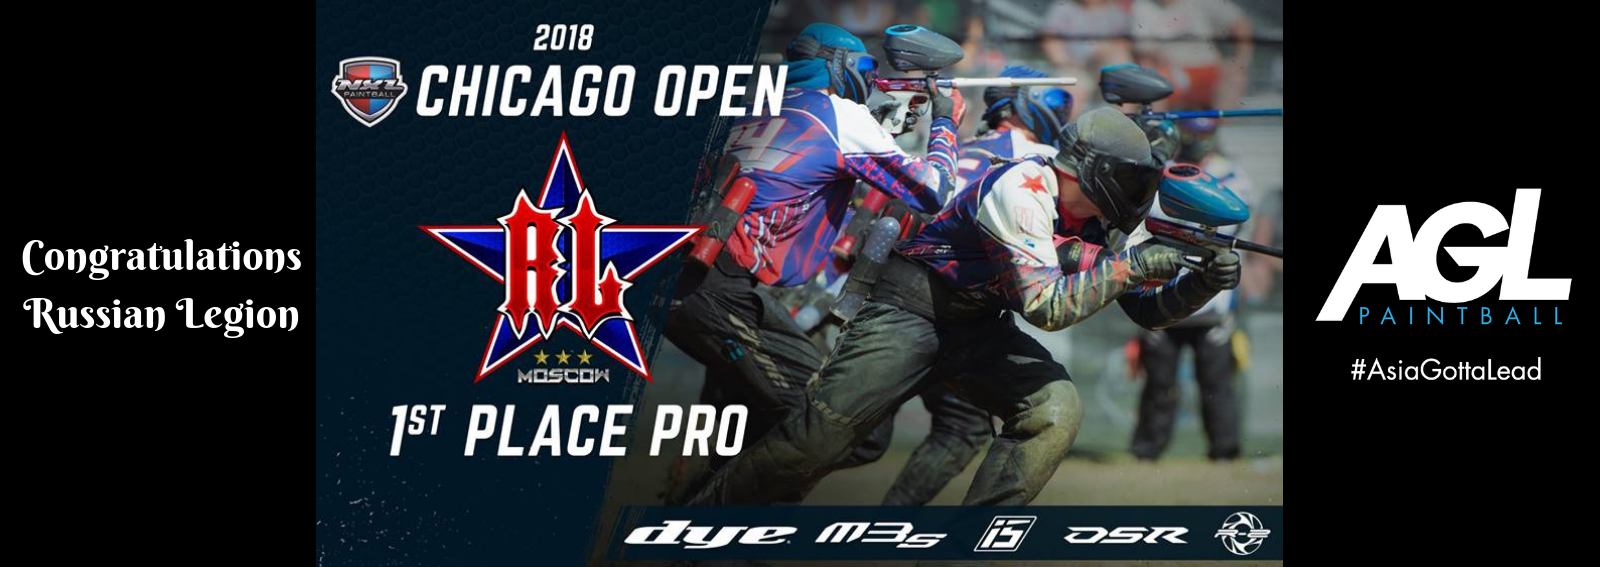 dye teams 1 2 finish at nxl chicago 2018 agl paintball